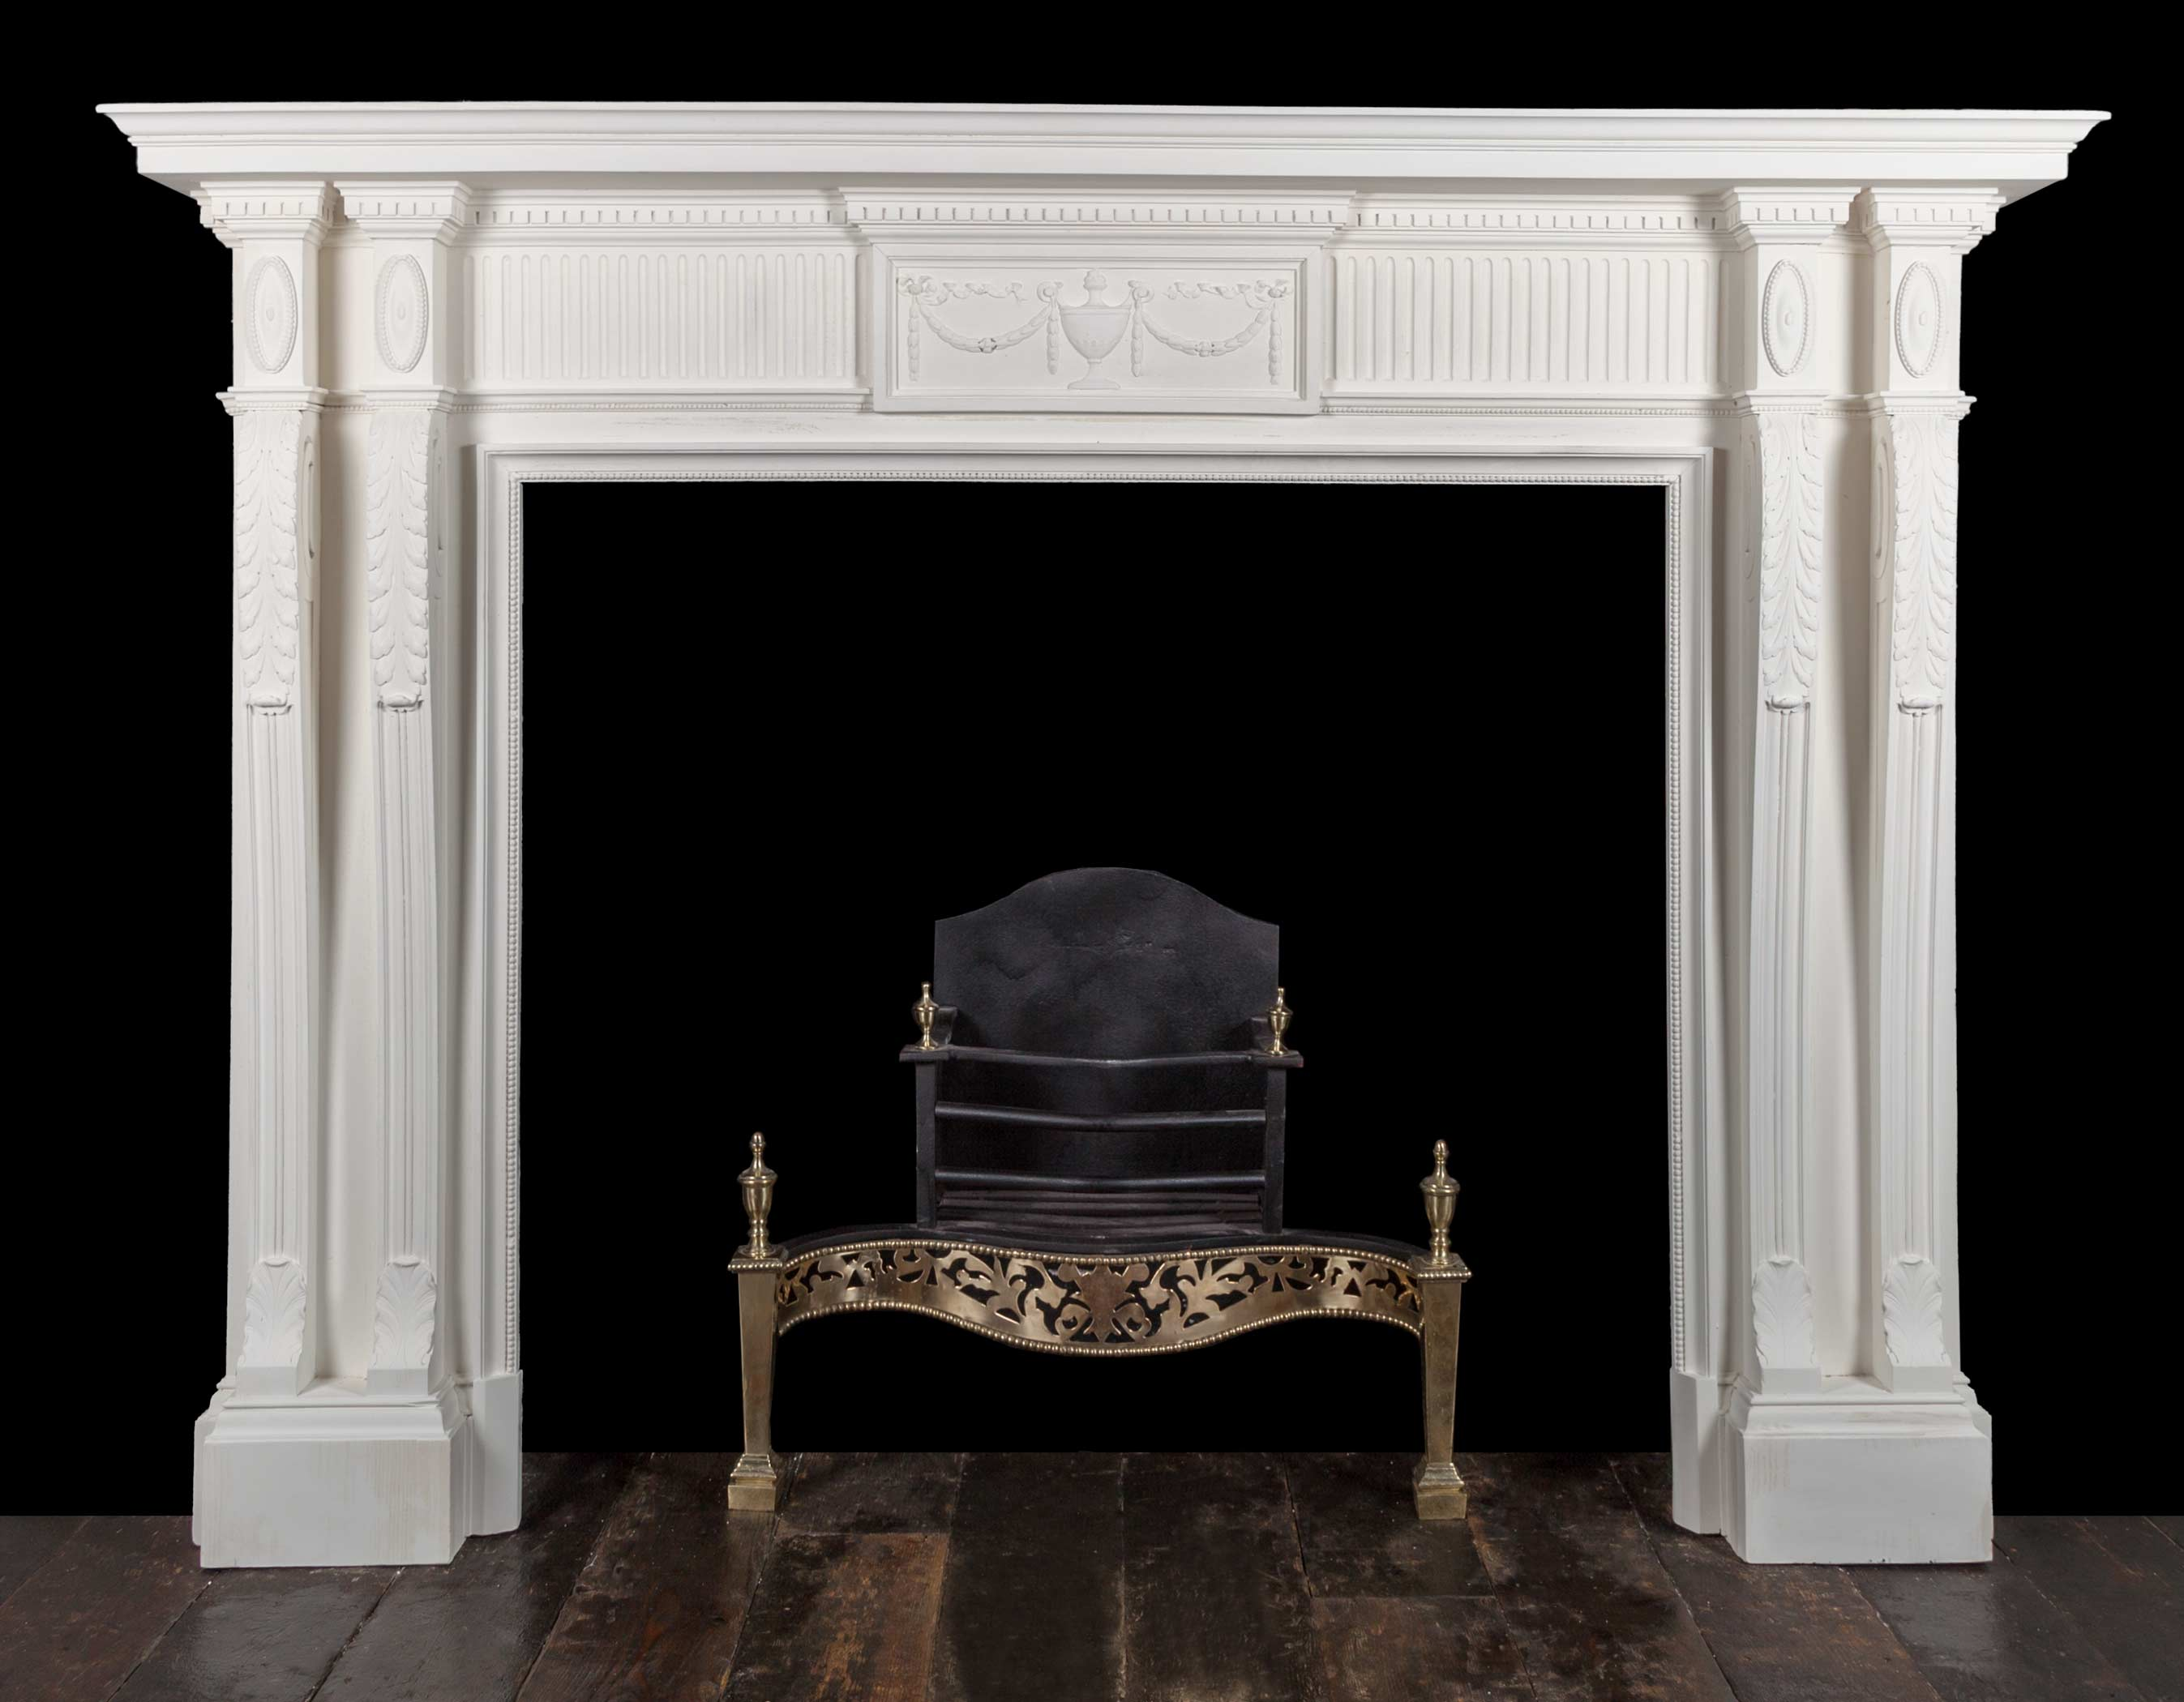 Antique Fireplace – W126